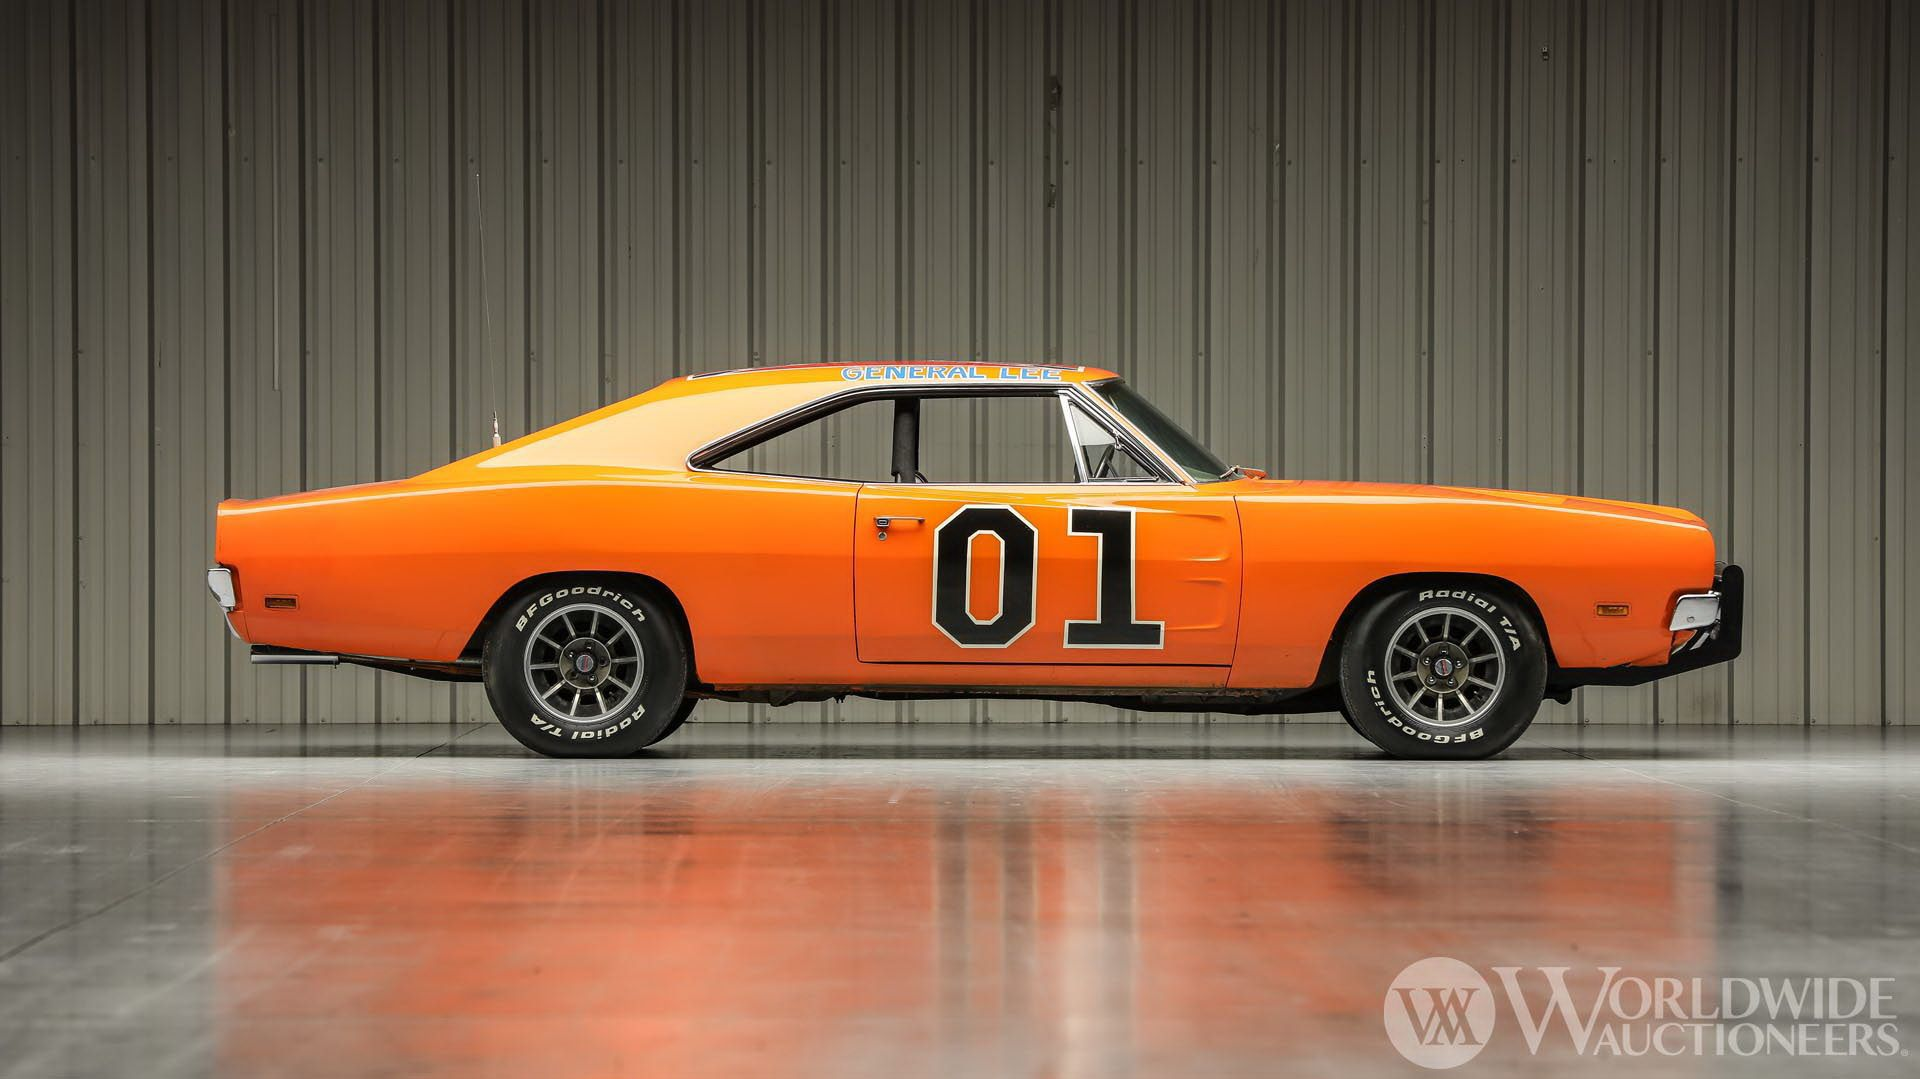 Dodge-Charger-General-Lee-Dukes-Of-Hazzard-auction-7